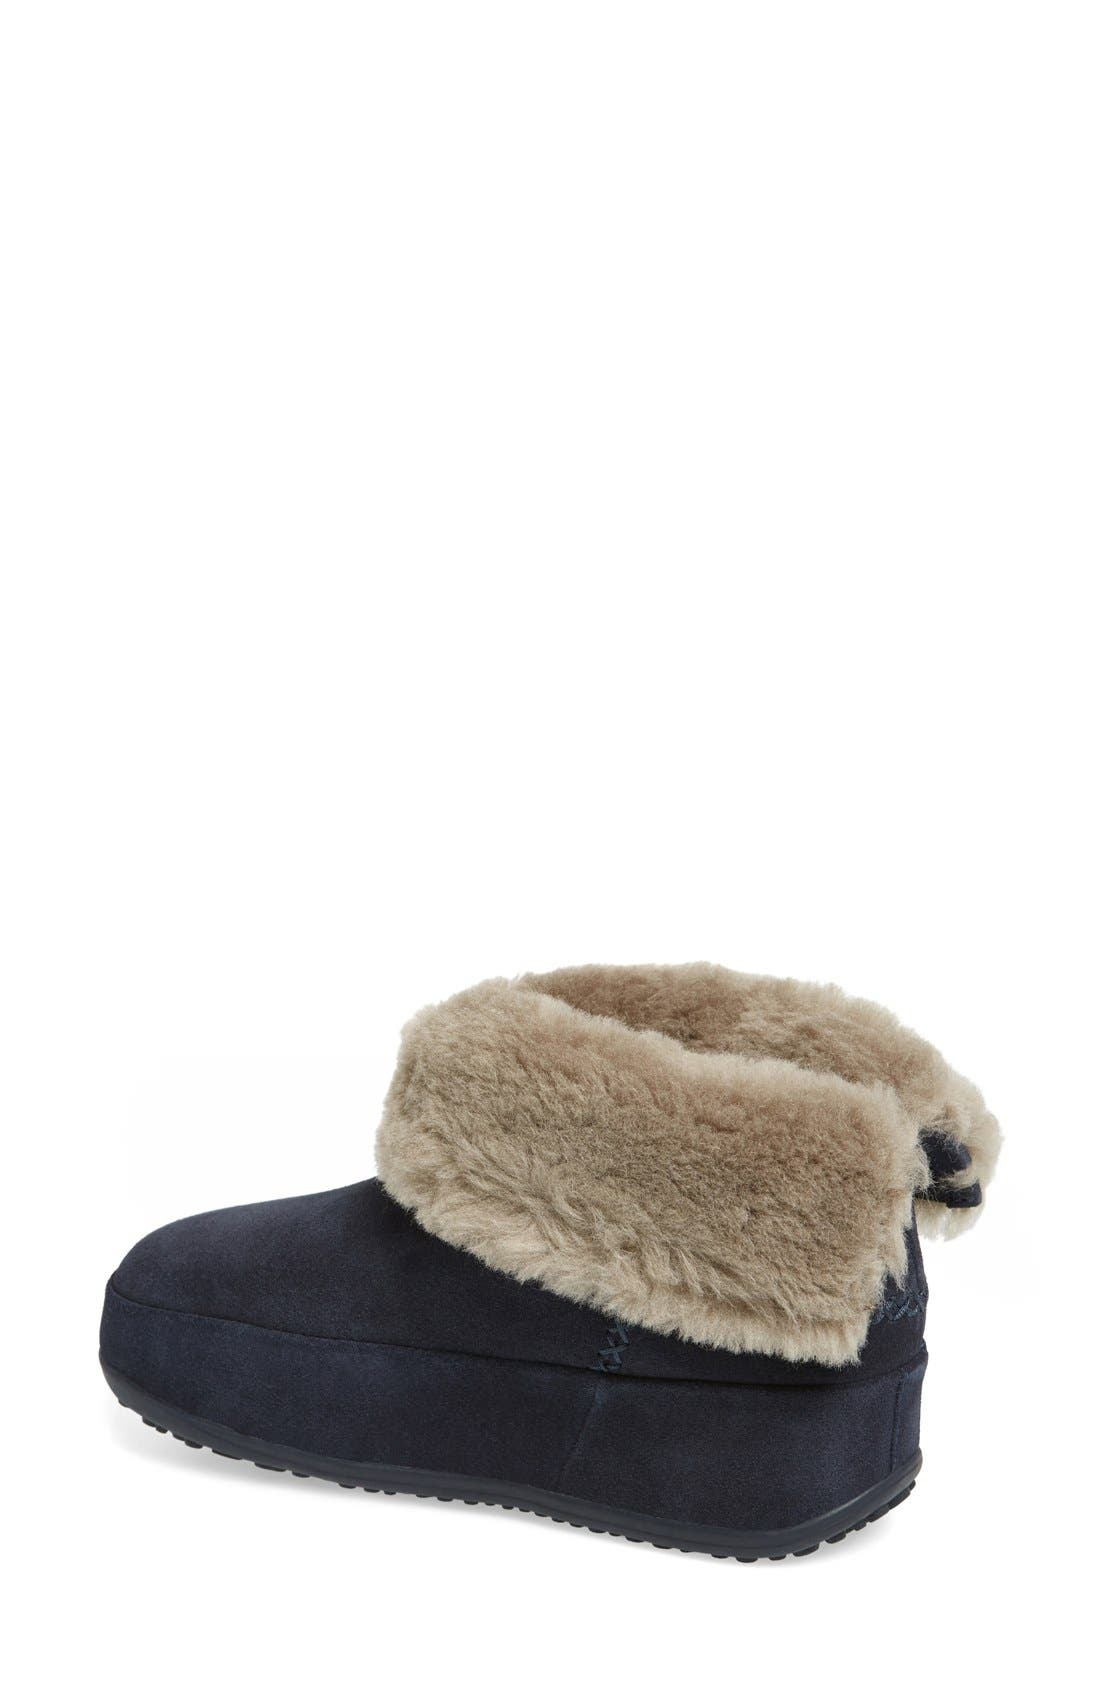 Alternate Image 2  - FitFlop™ 'Shorty' Shearling Lined Boot (Women)